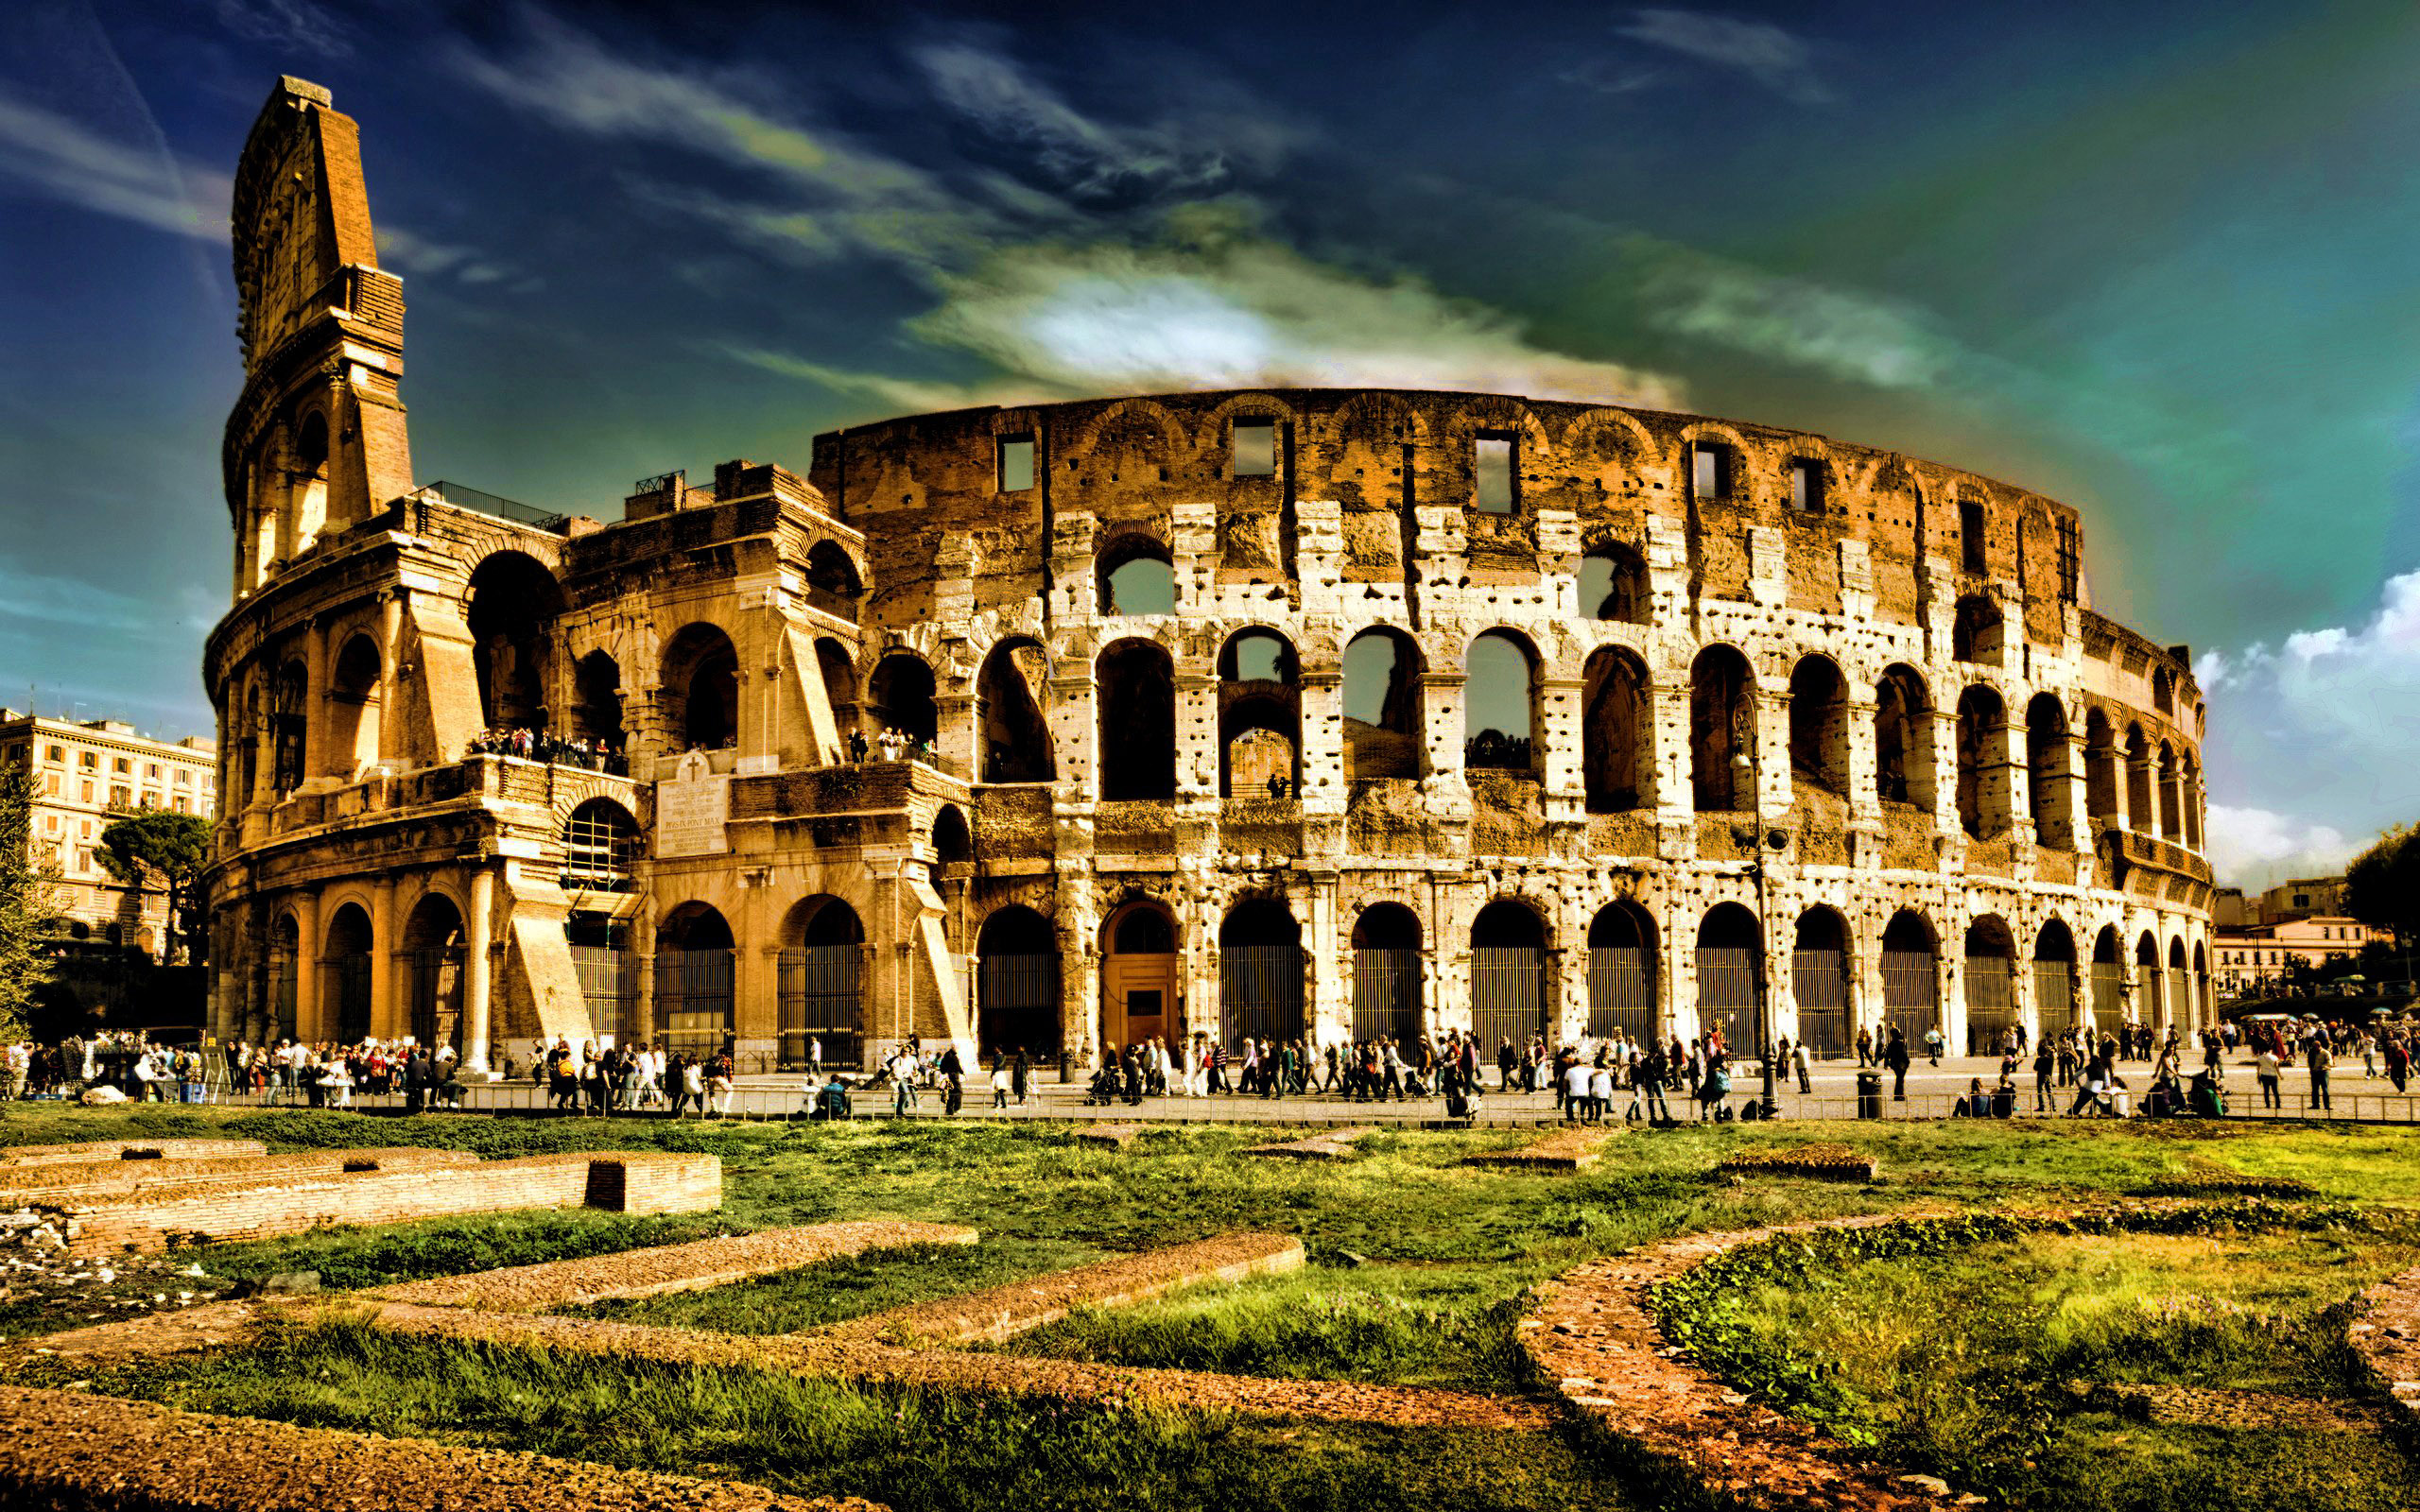 Download Wallpaper Colosseum Rome Italy Architecture 2560x1600 The Famous